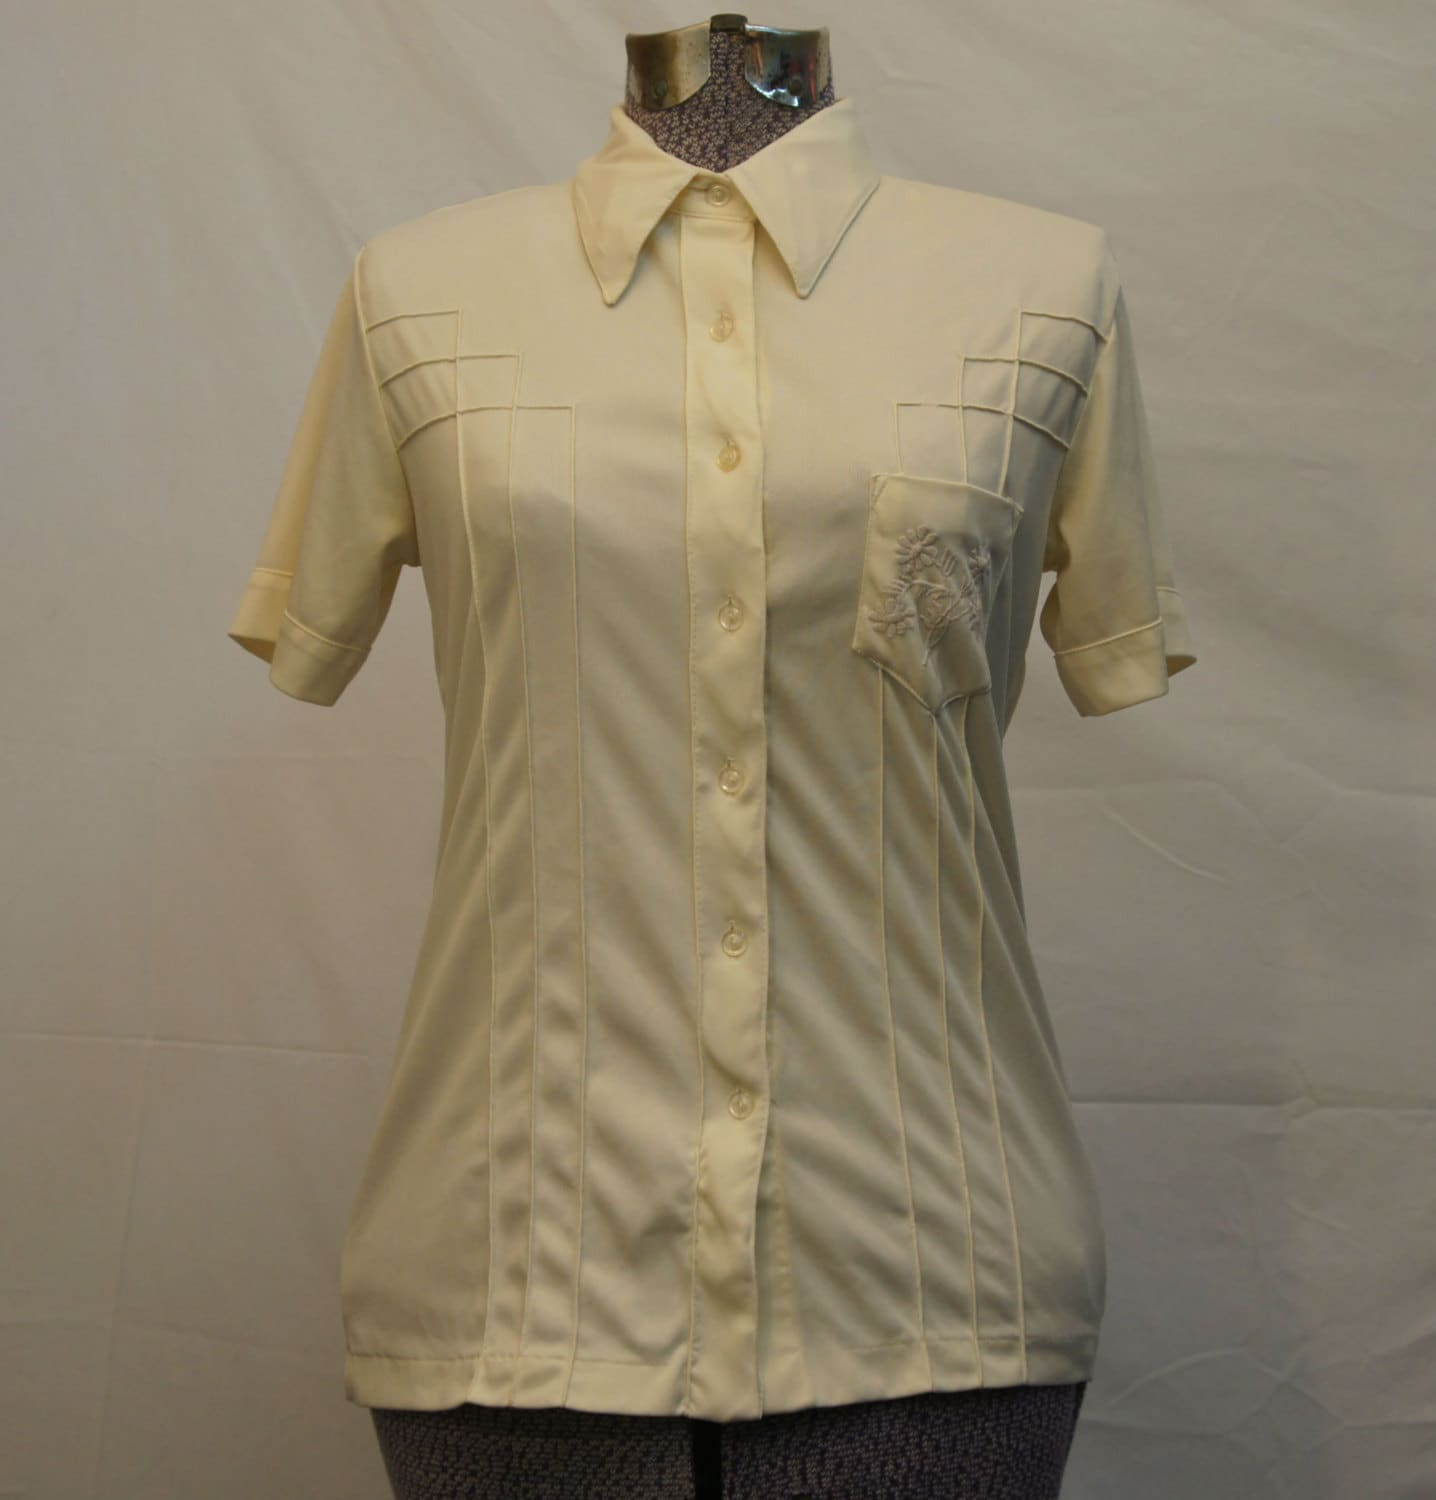 Women's Vintage Button-up by K- Mart Size 34